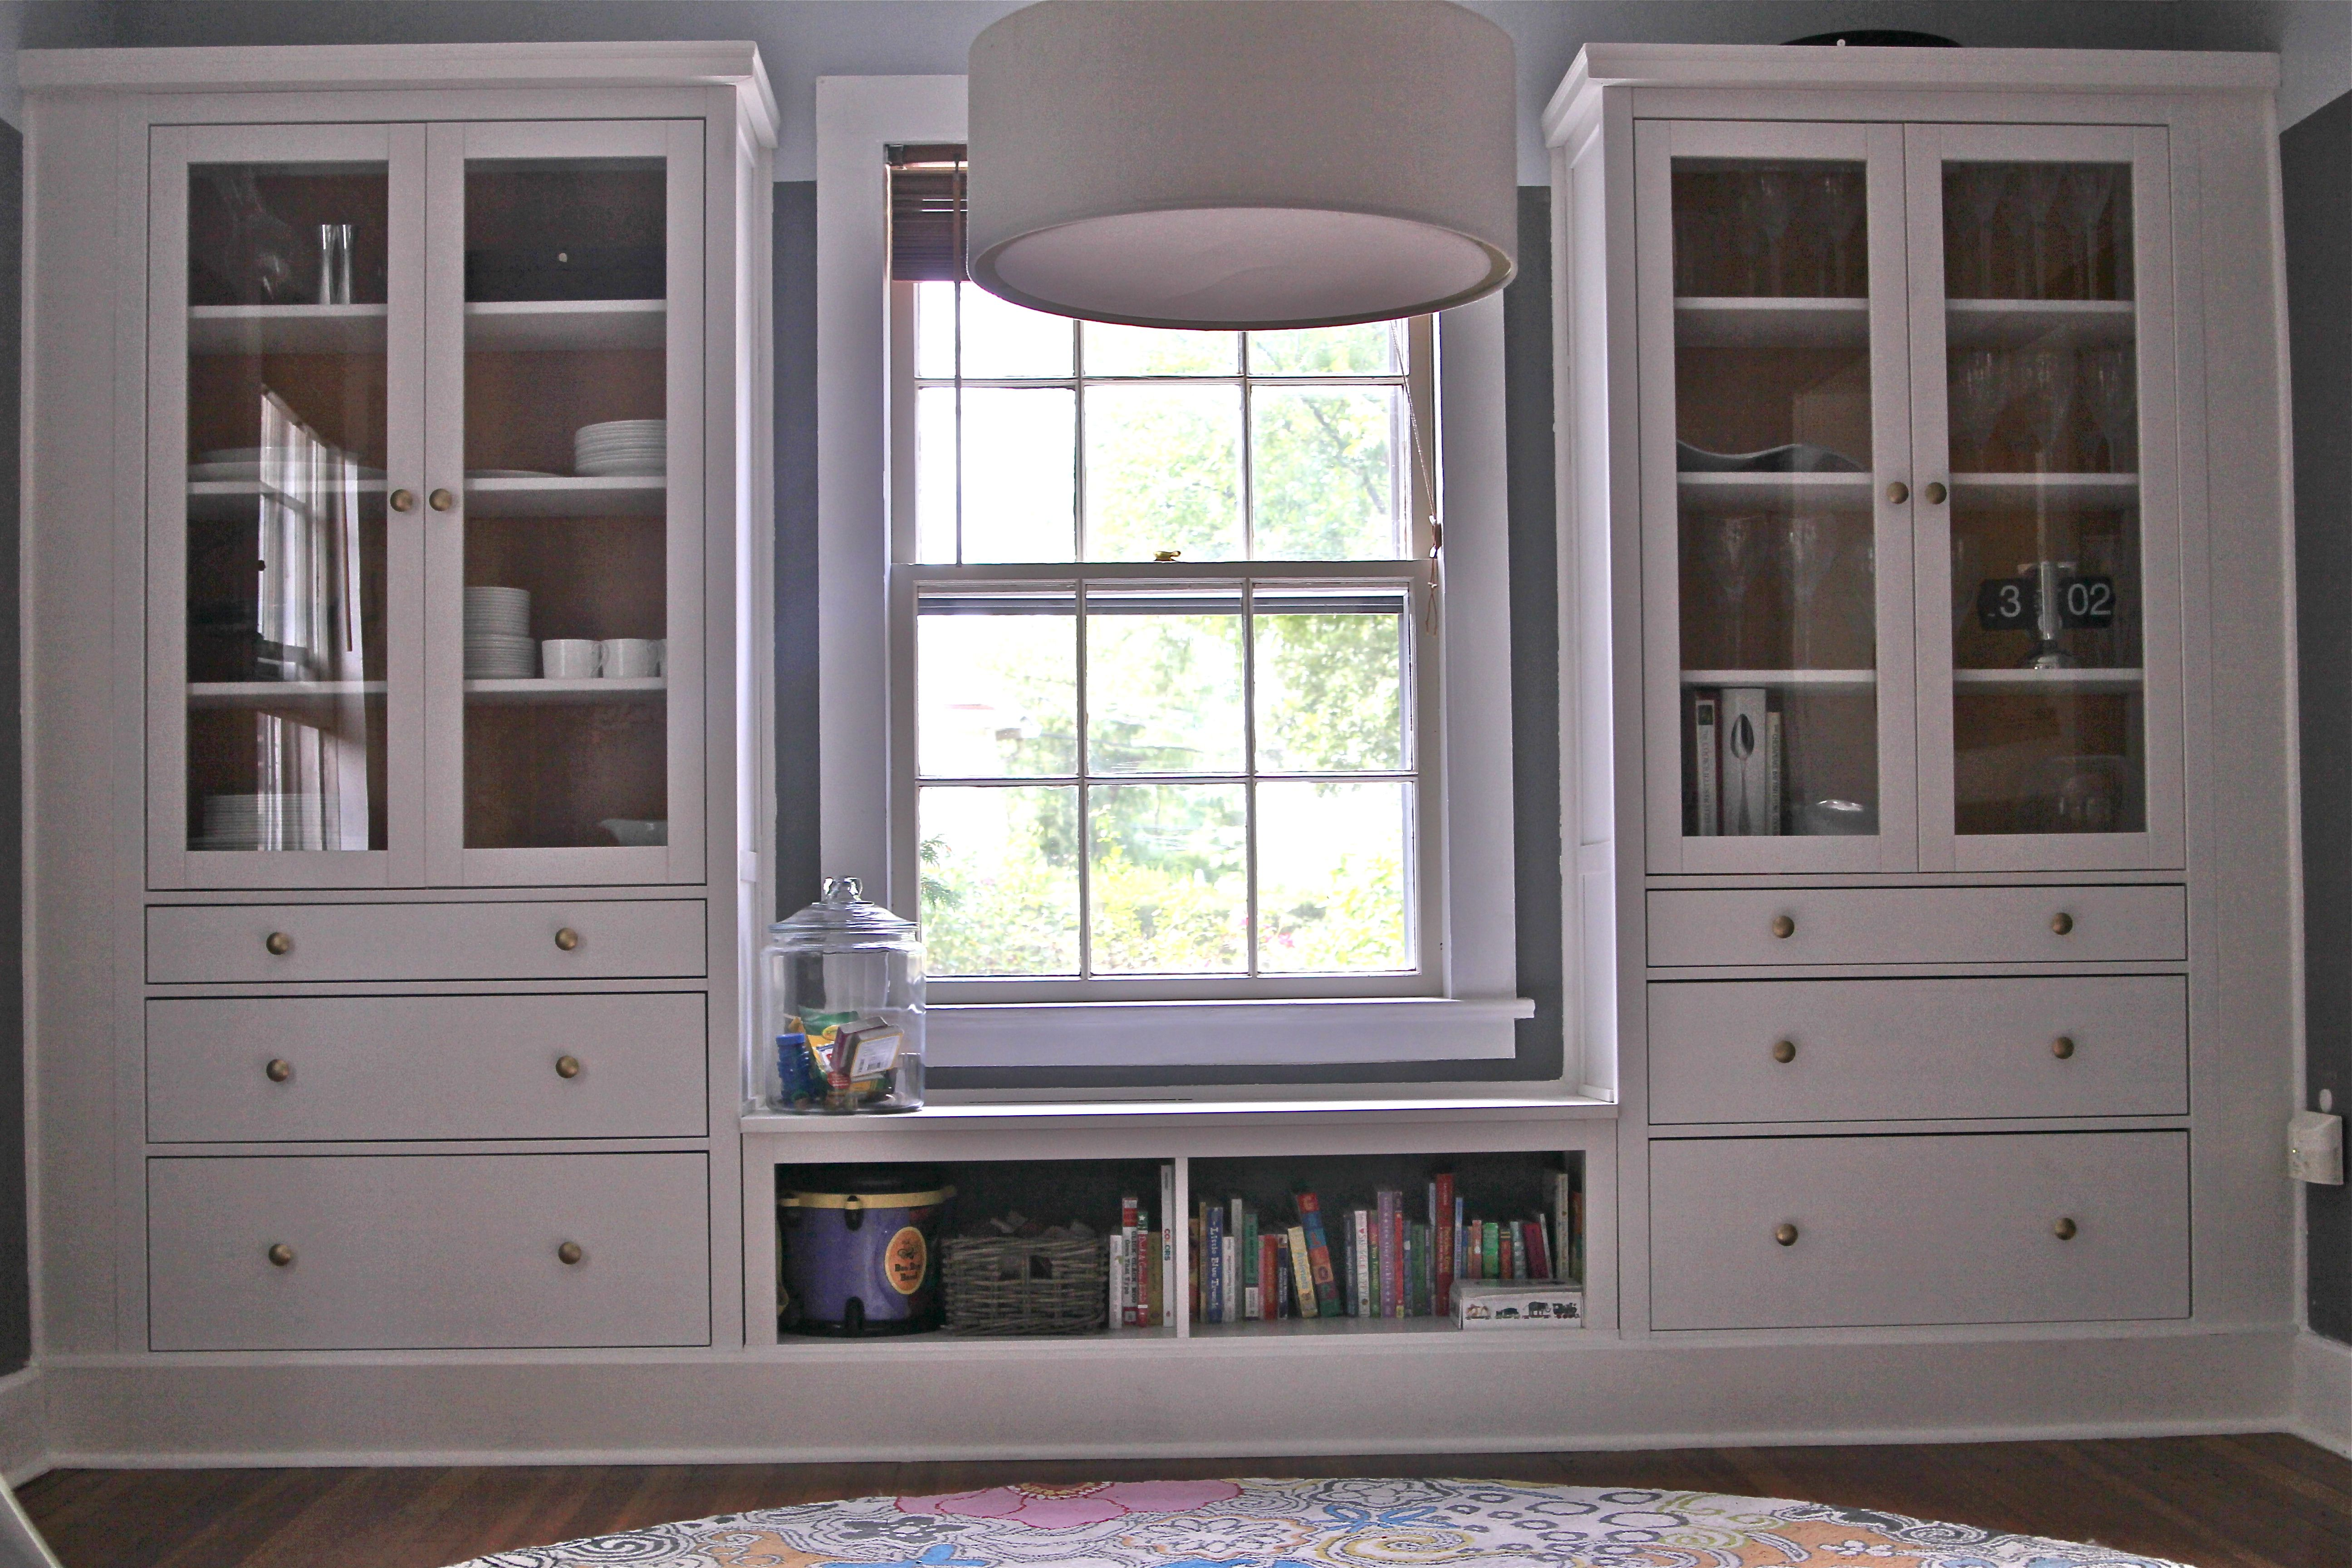 Ikea Window Seat Ikea Hemnes Hack Dining Room Built Ins Using Hemnes Cabinets And